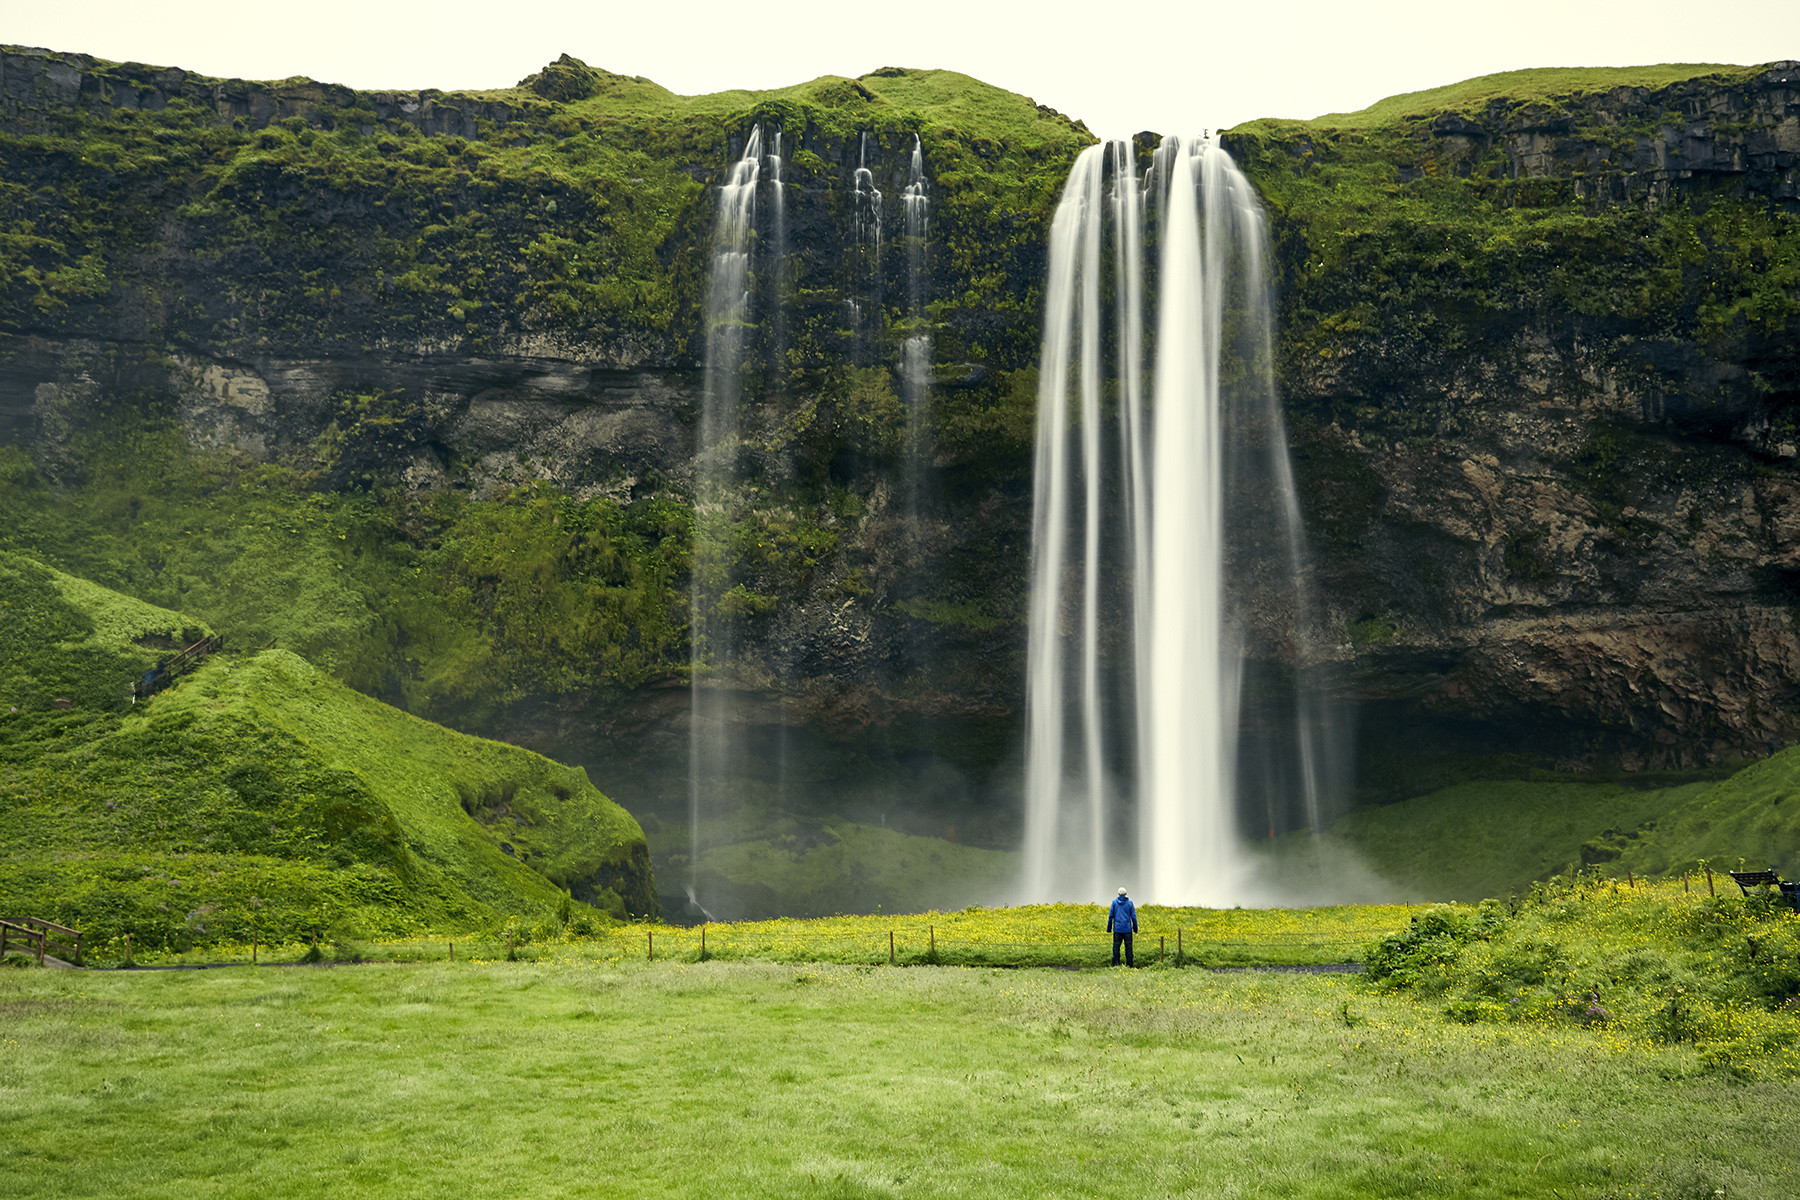 Seljalandsfoss,, Wasserfall, waterfall, Island, Iceland, Roadtrip, Rundreise, Individualreise, planen, bucketlist, things to see, viele Touristen, Reiseblog, Reiseblogger, Travelblog, Miles and Shores